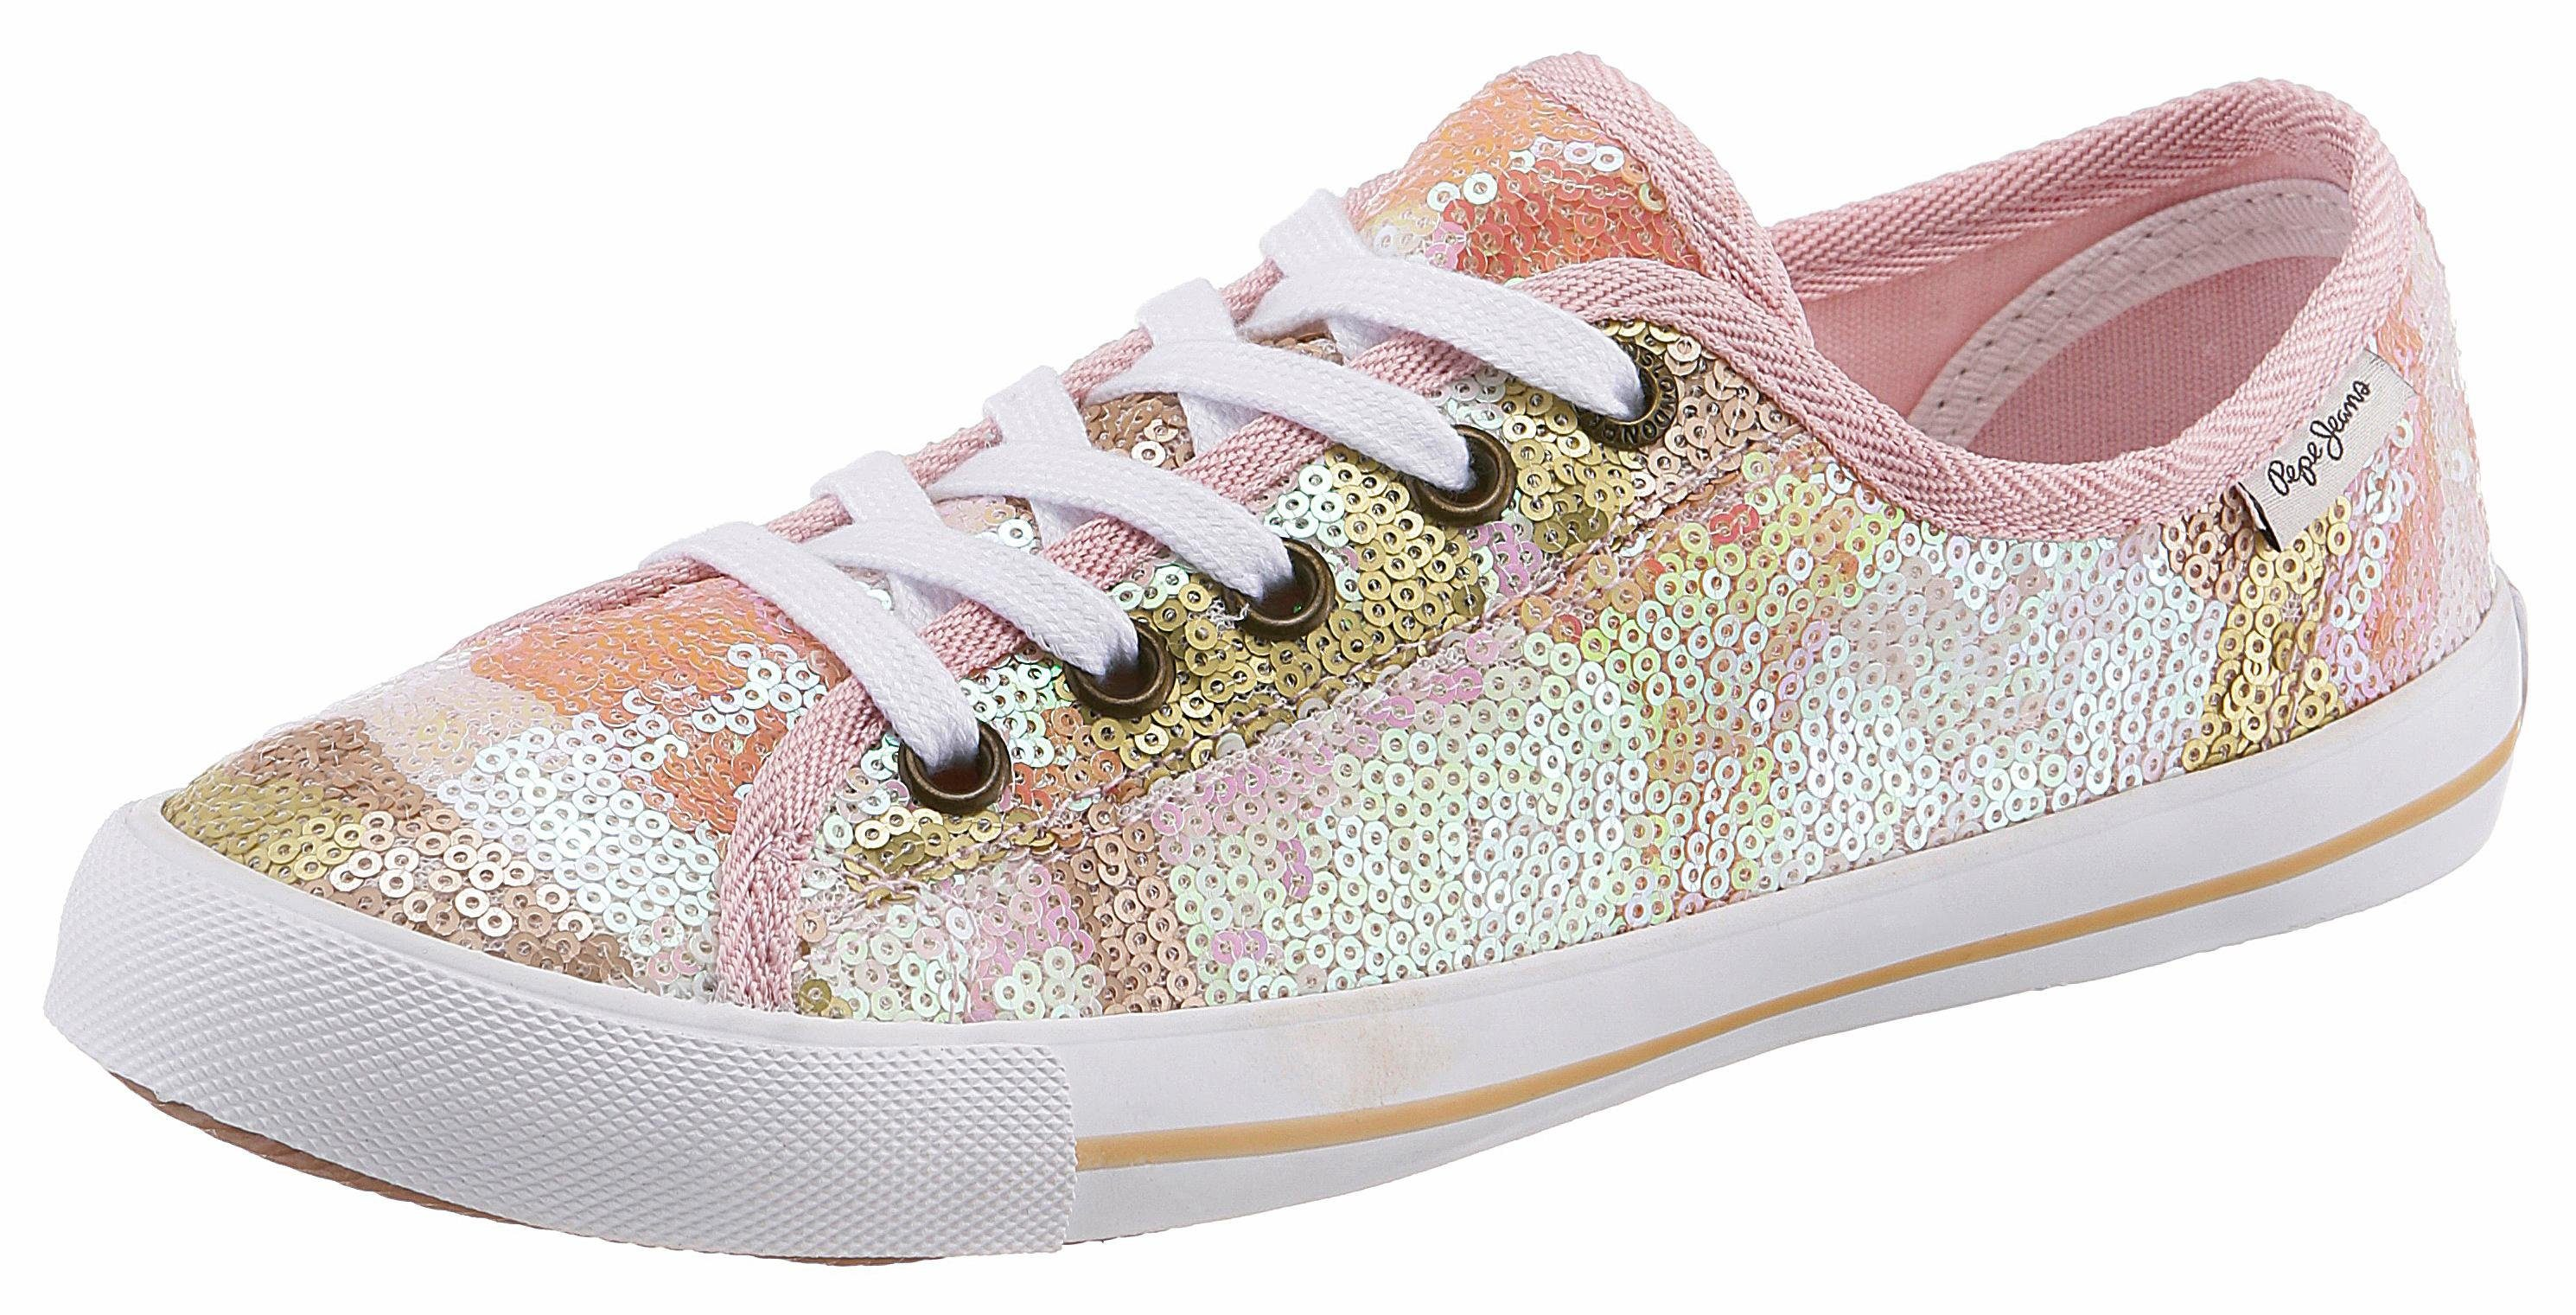 Pepe Jeans Gable Top Sneakers, goldfarben, gold